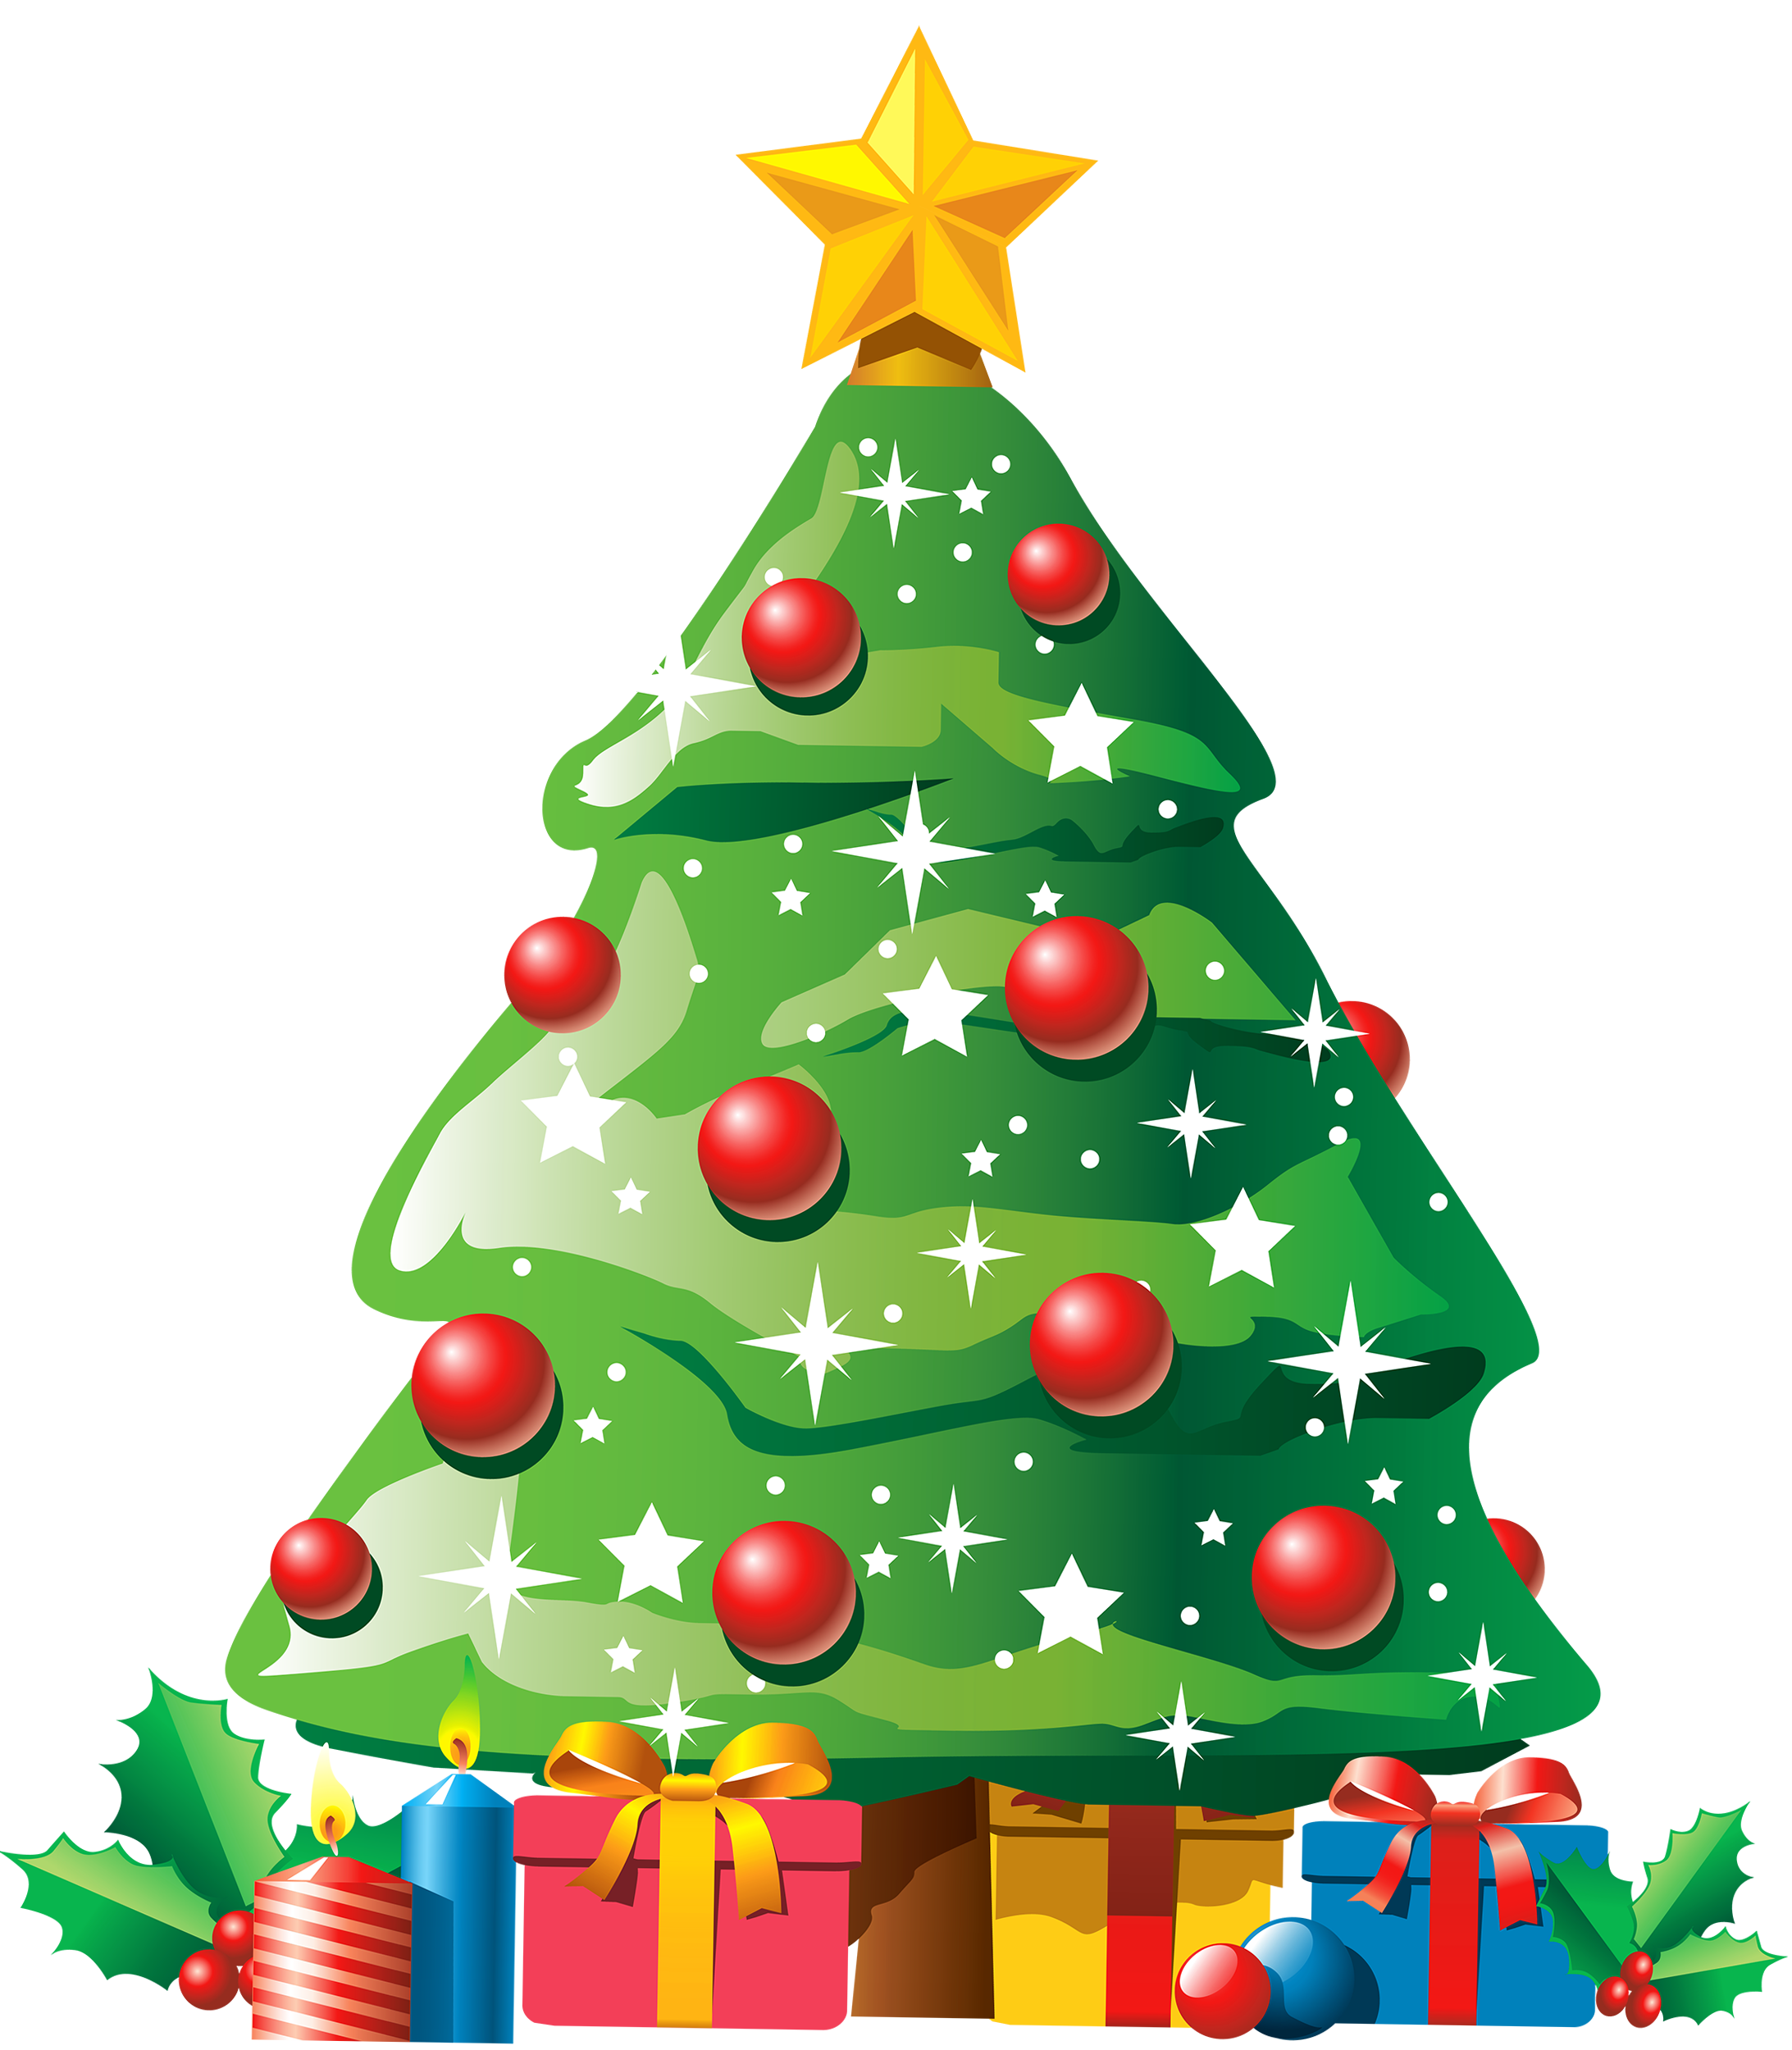 Tree Christmas Png image #35324